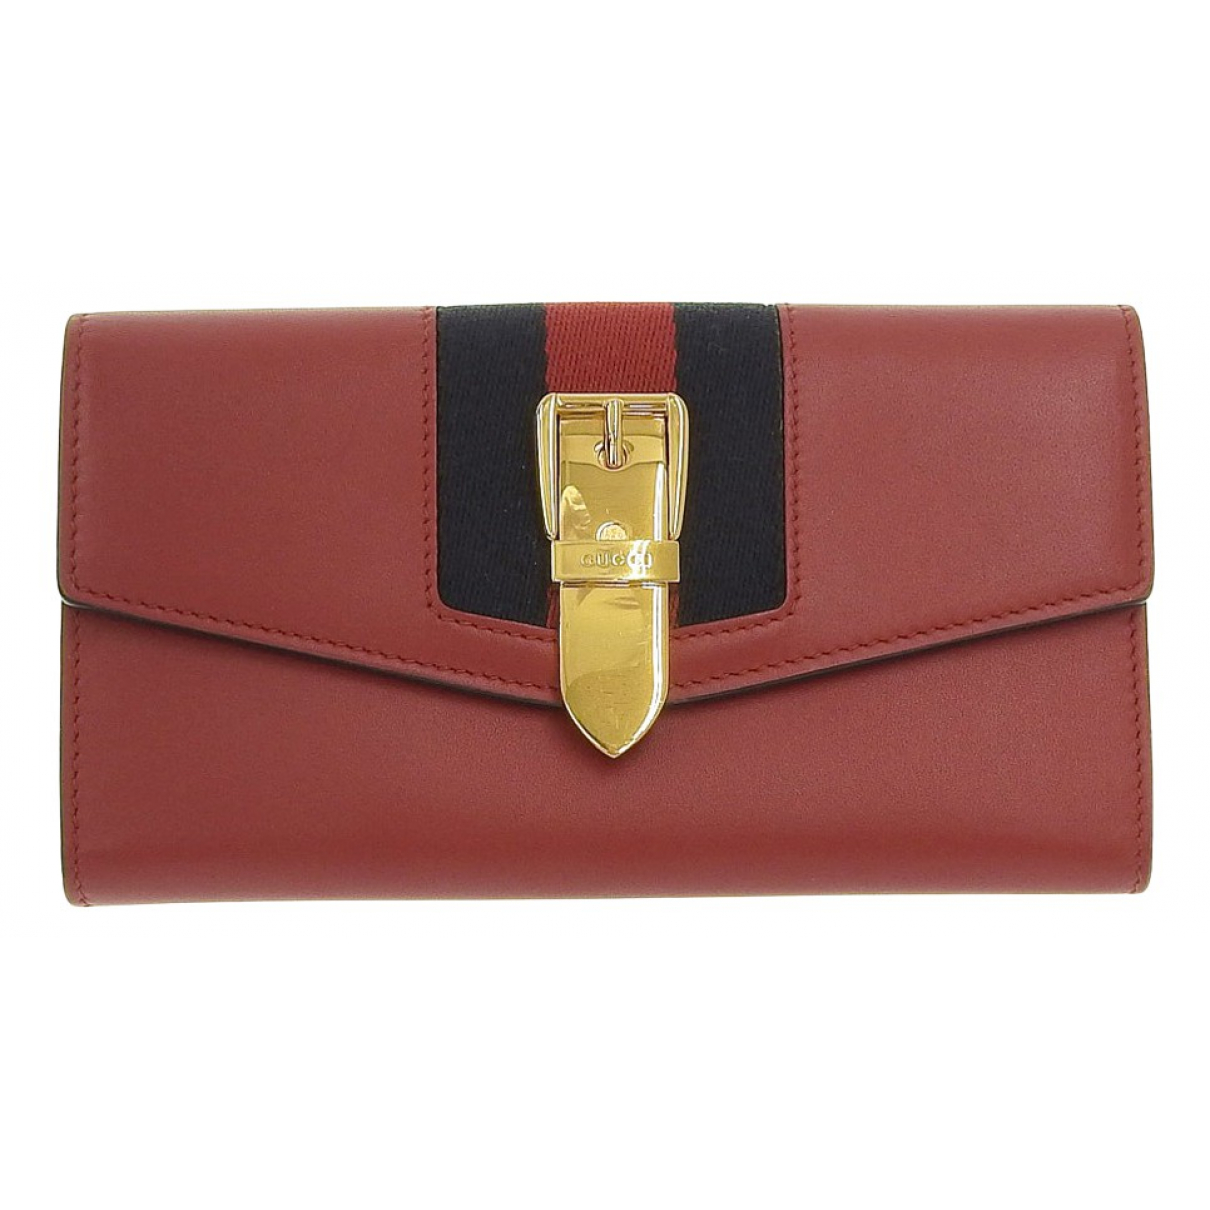 Gucci N Multicolour Leather wallet for Women N